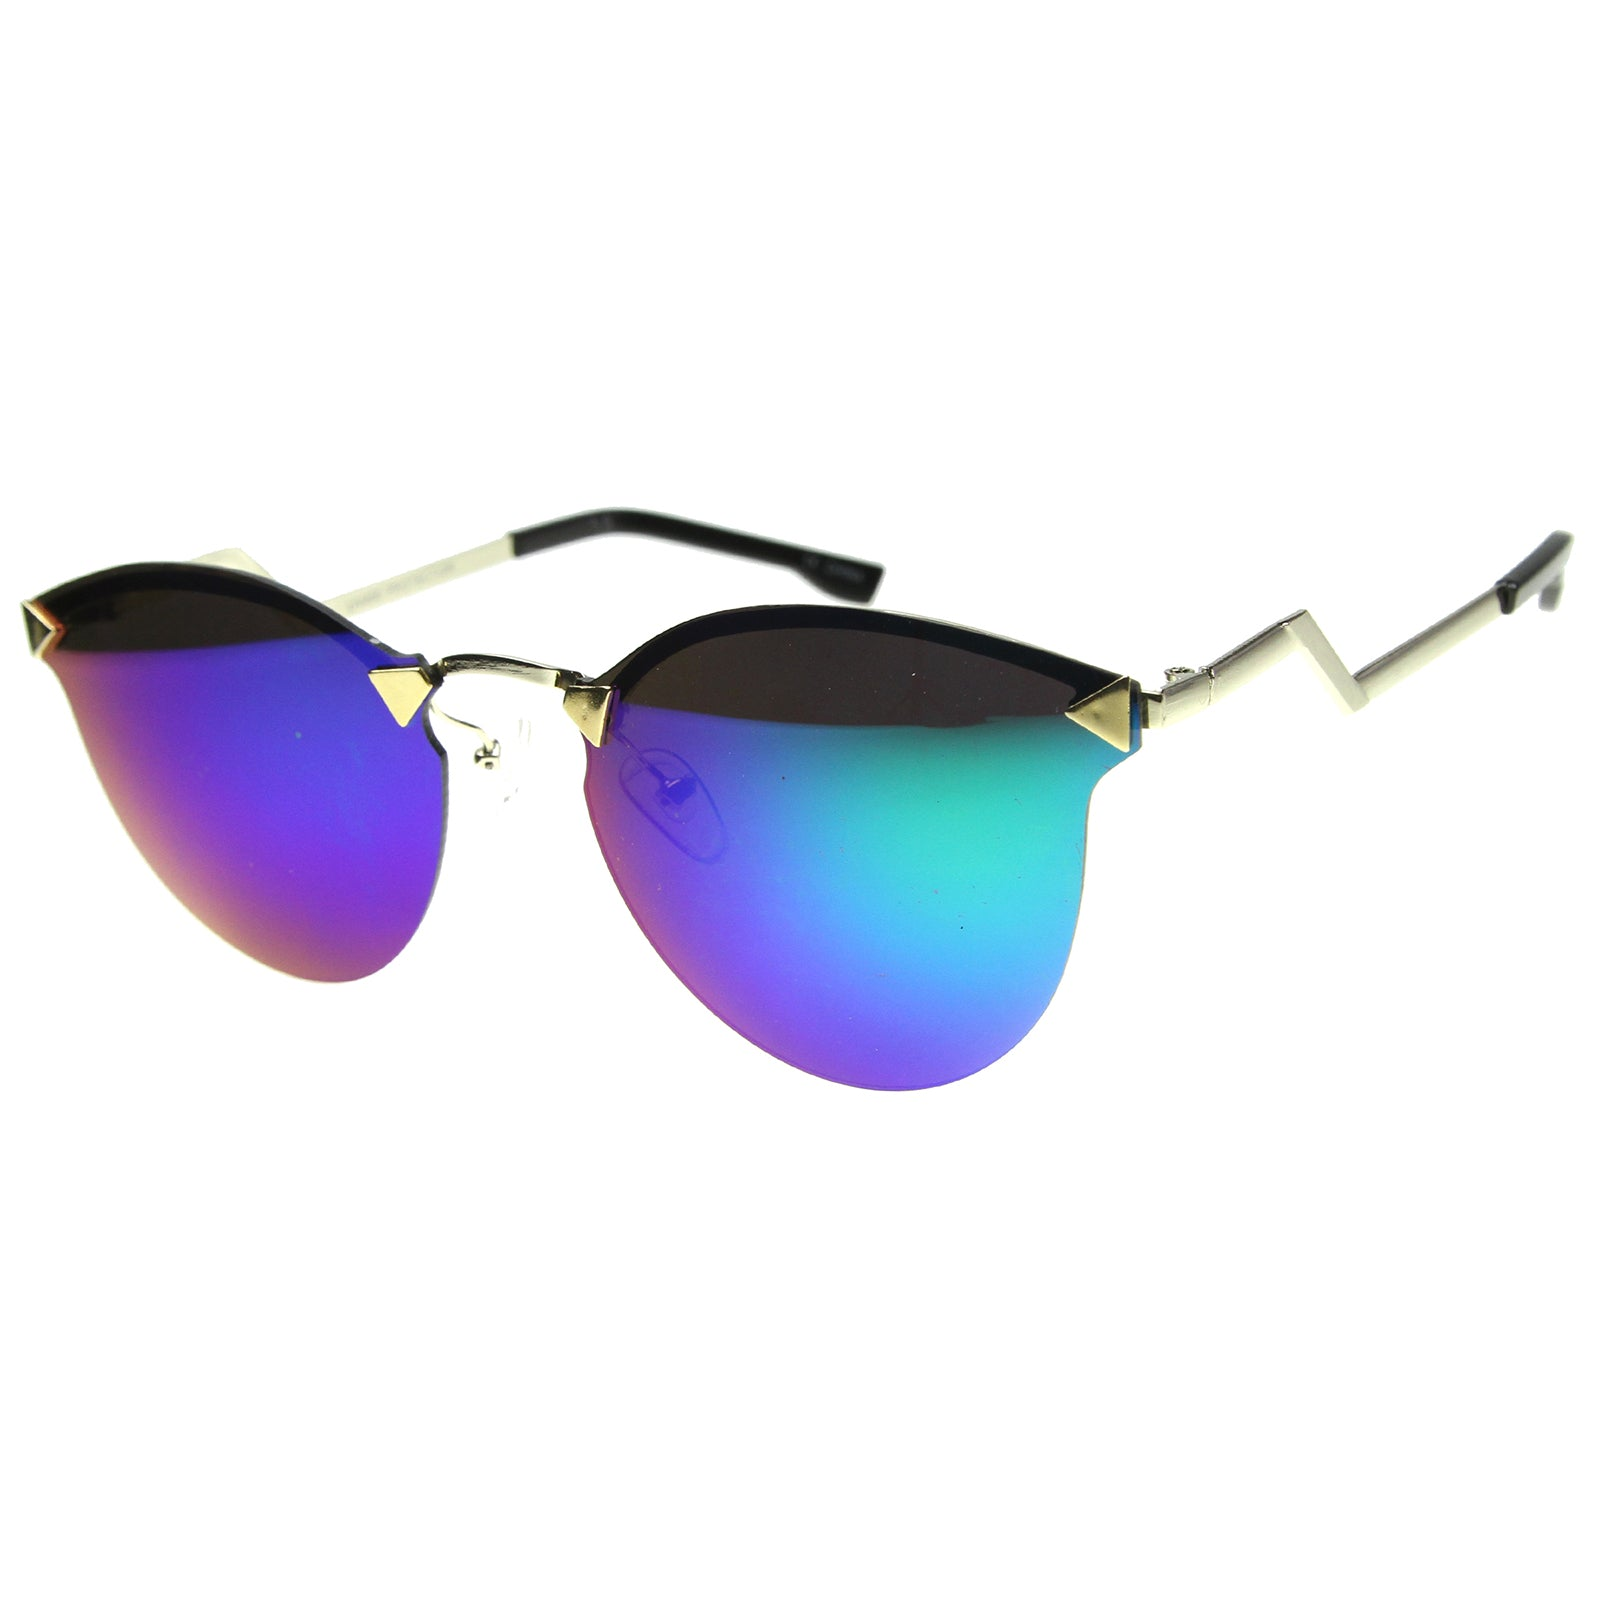 Mens Metal Aviator Sunglasses With UV400 Protected Mirrored Lens - sunglass.la - 6